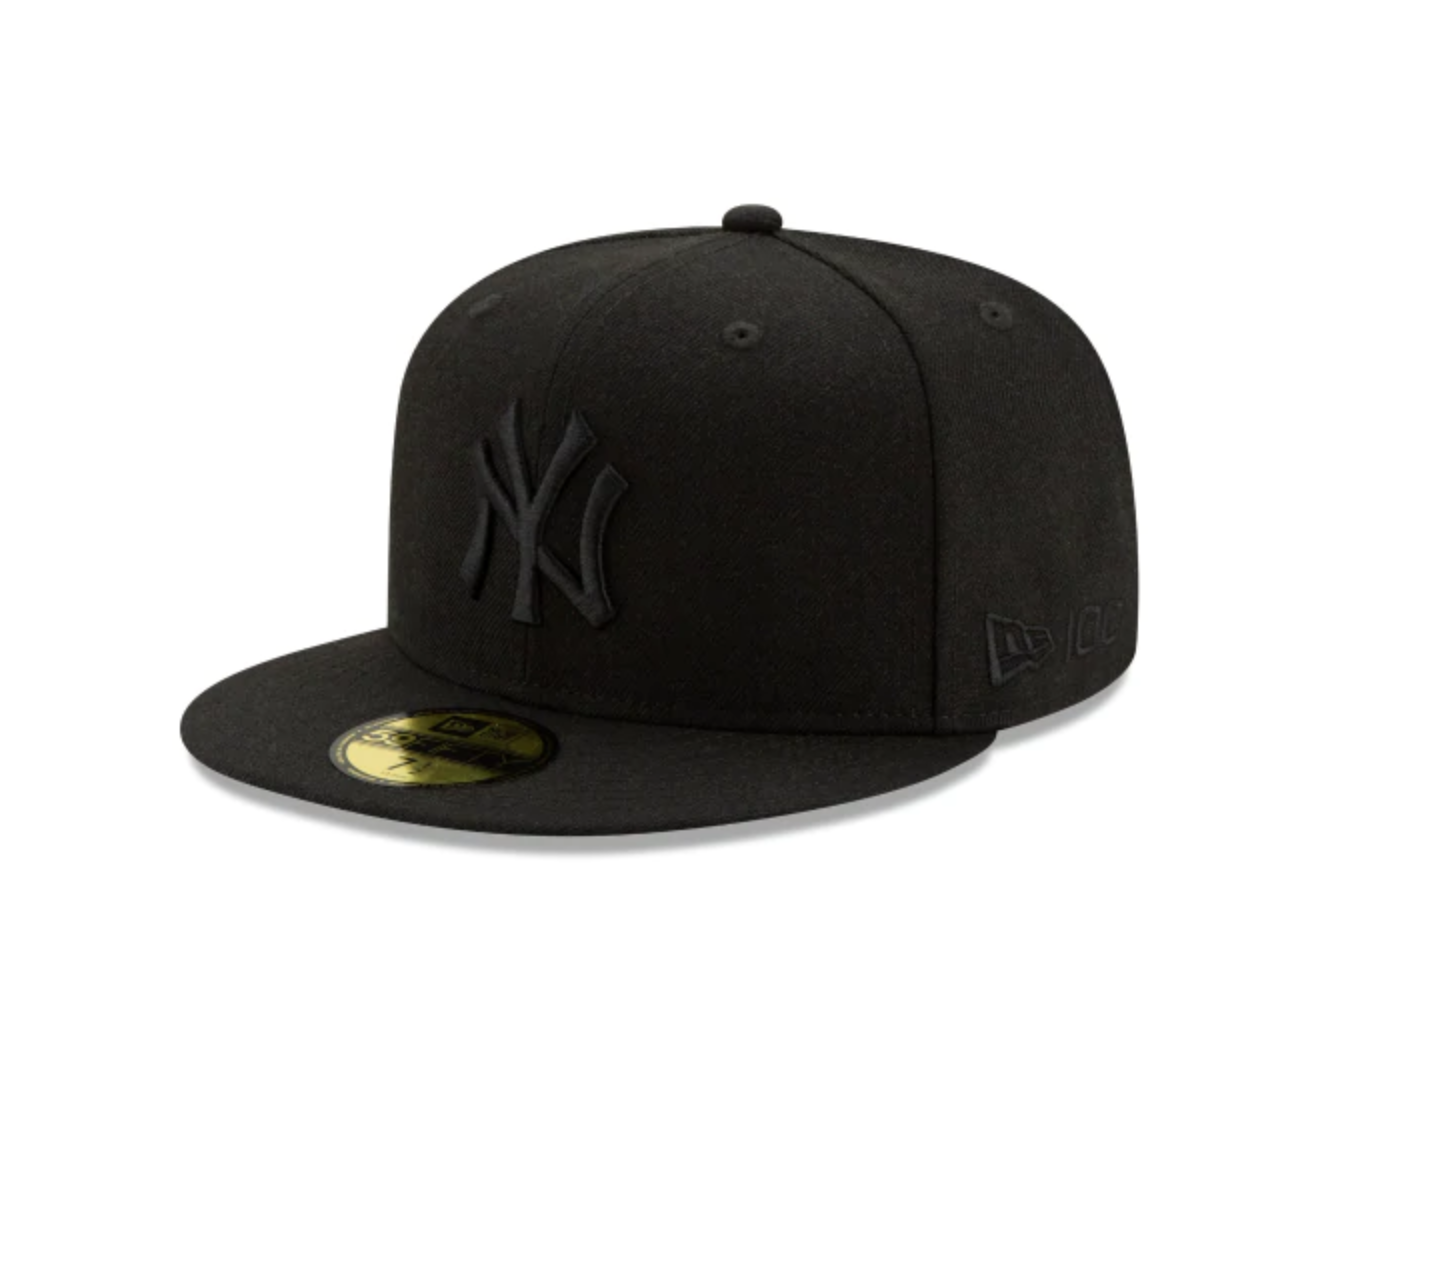 New York Yankees Black Wool 59fifty Fitted In 2020 New Era Cap Black Wool New York Yankees